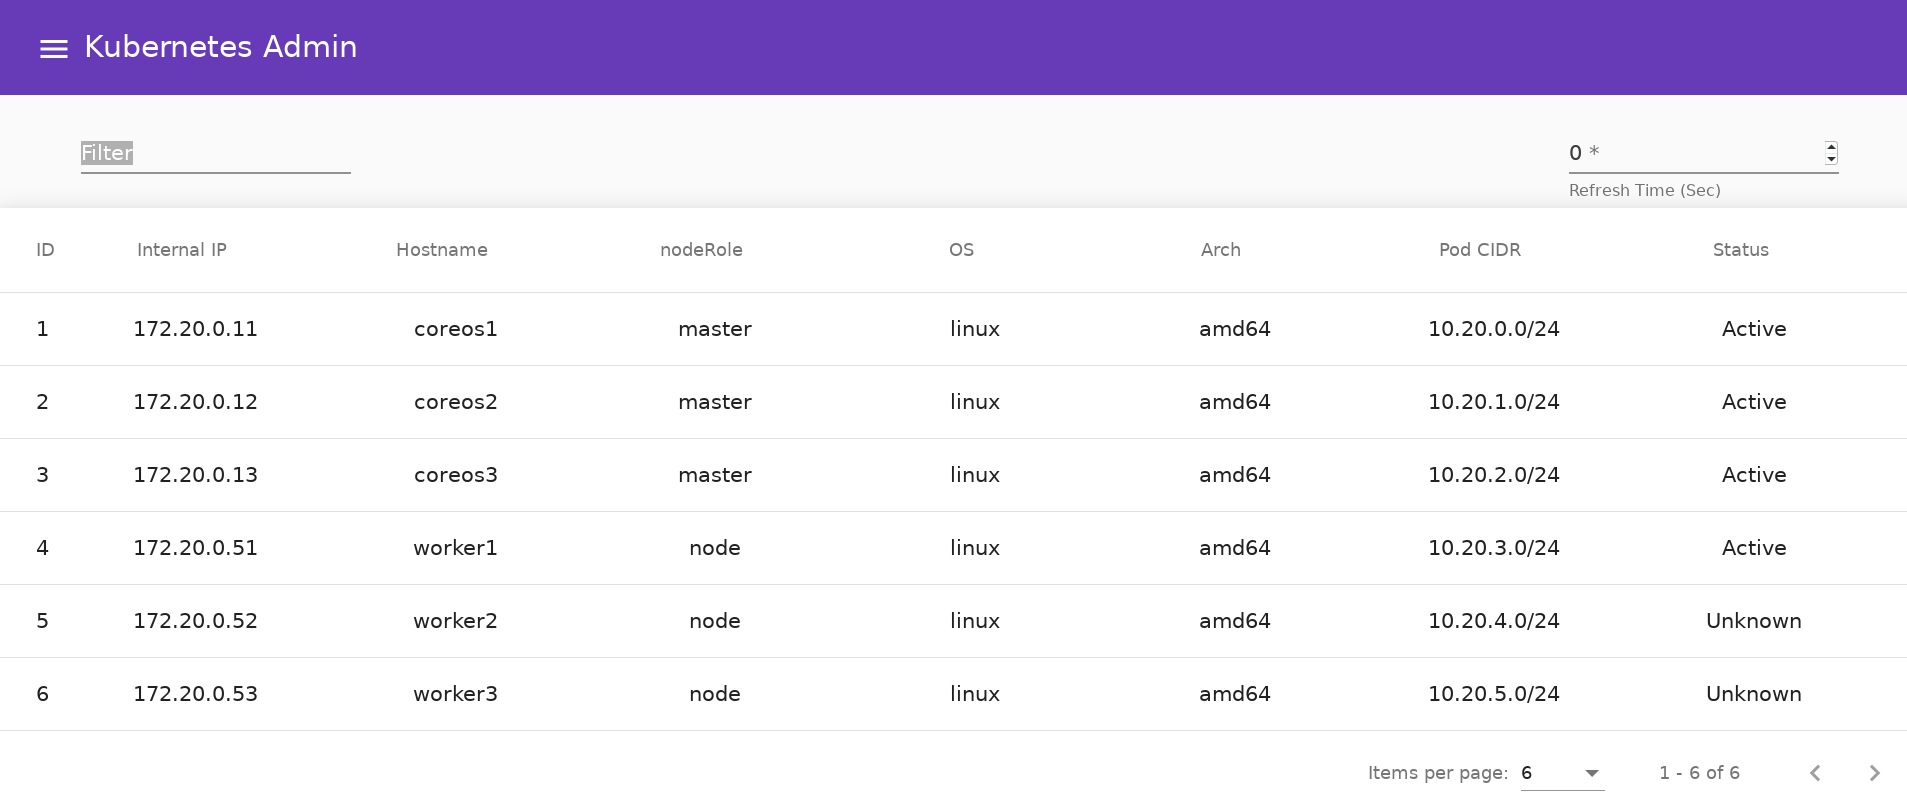 Web GUI/UI - Administrating A Kubernetes Cluster Created With